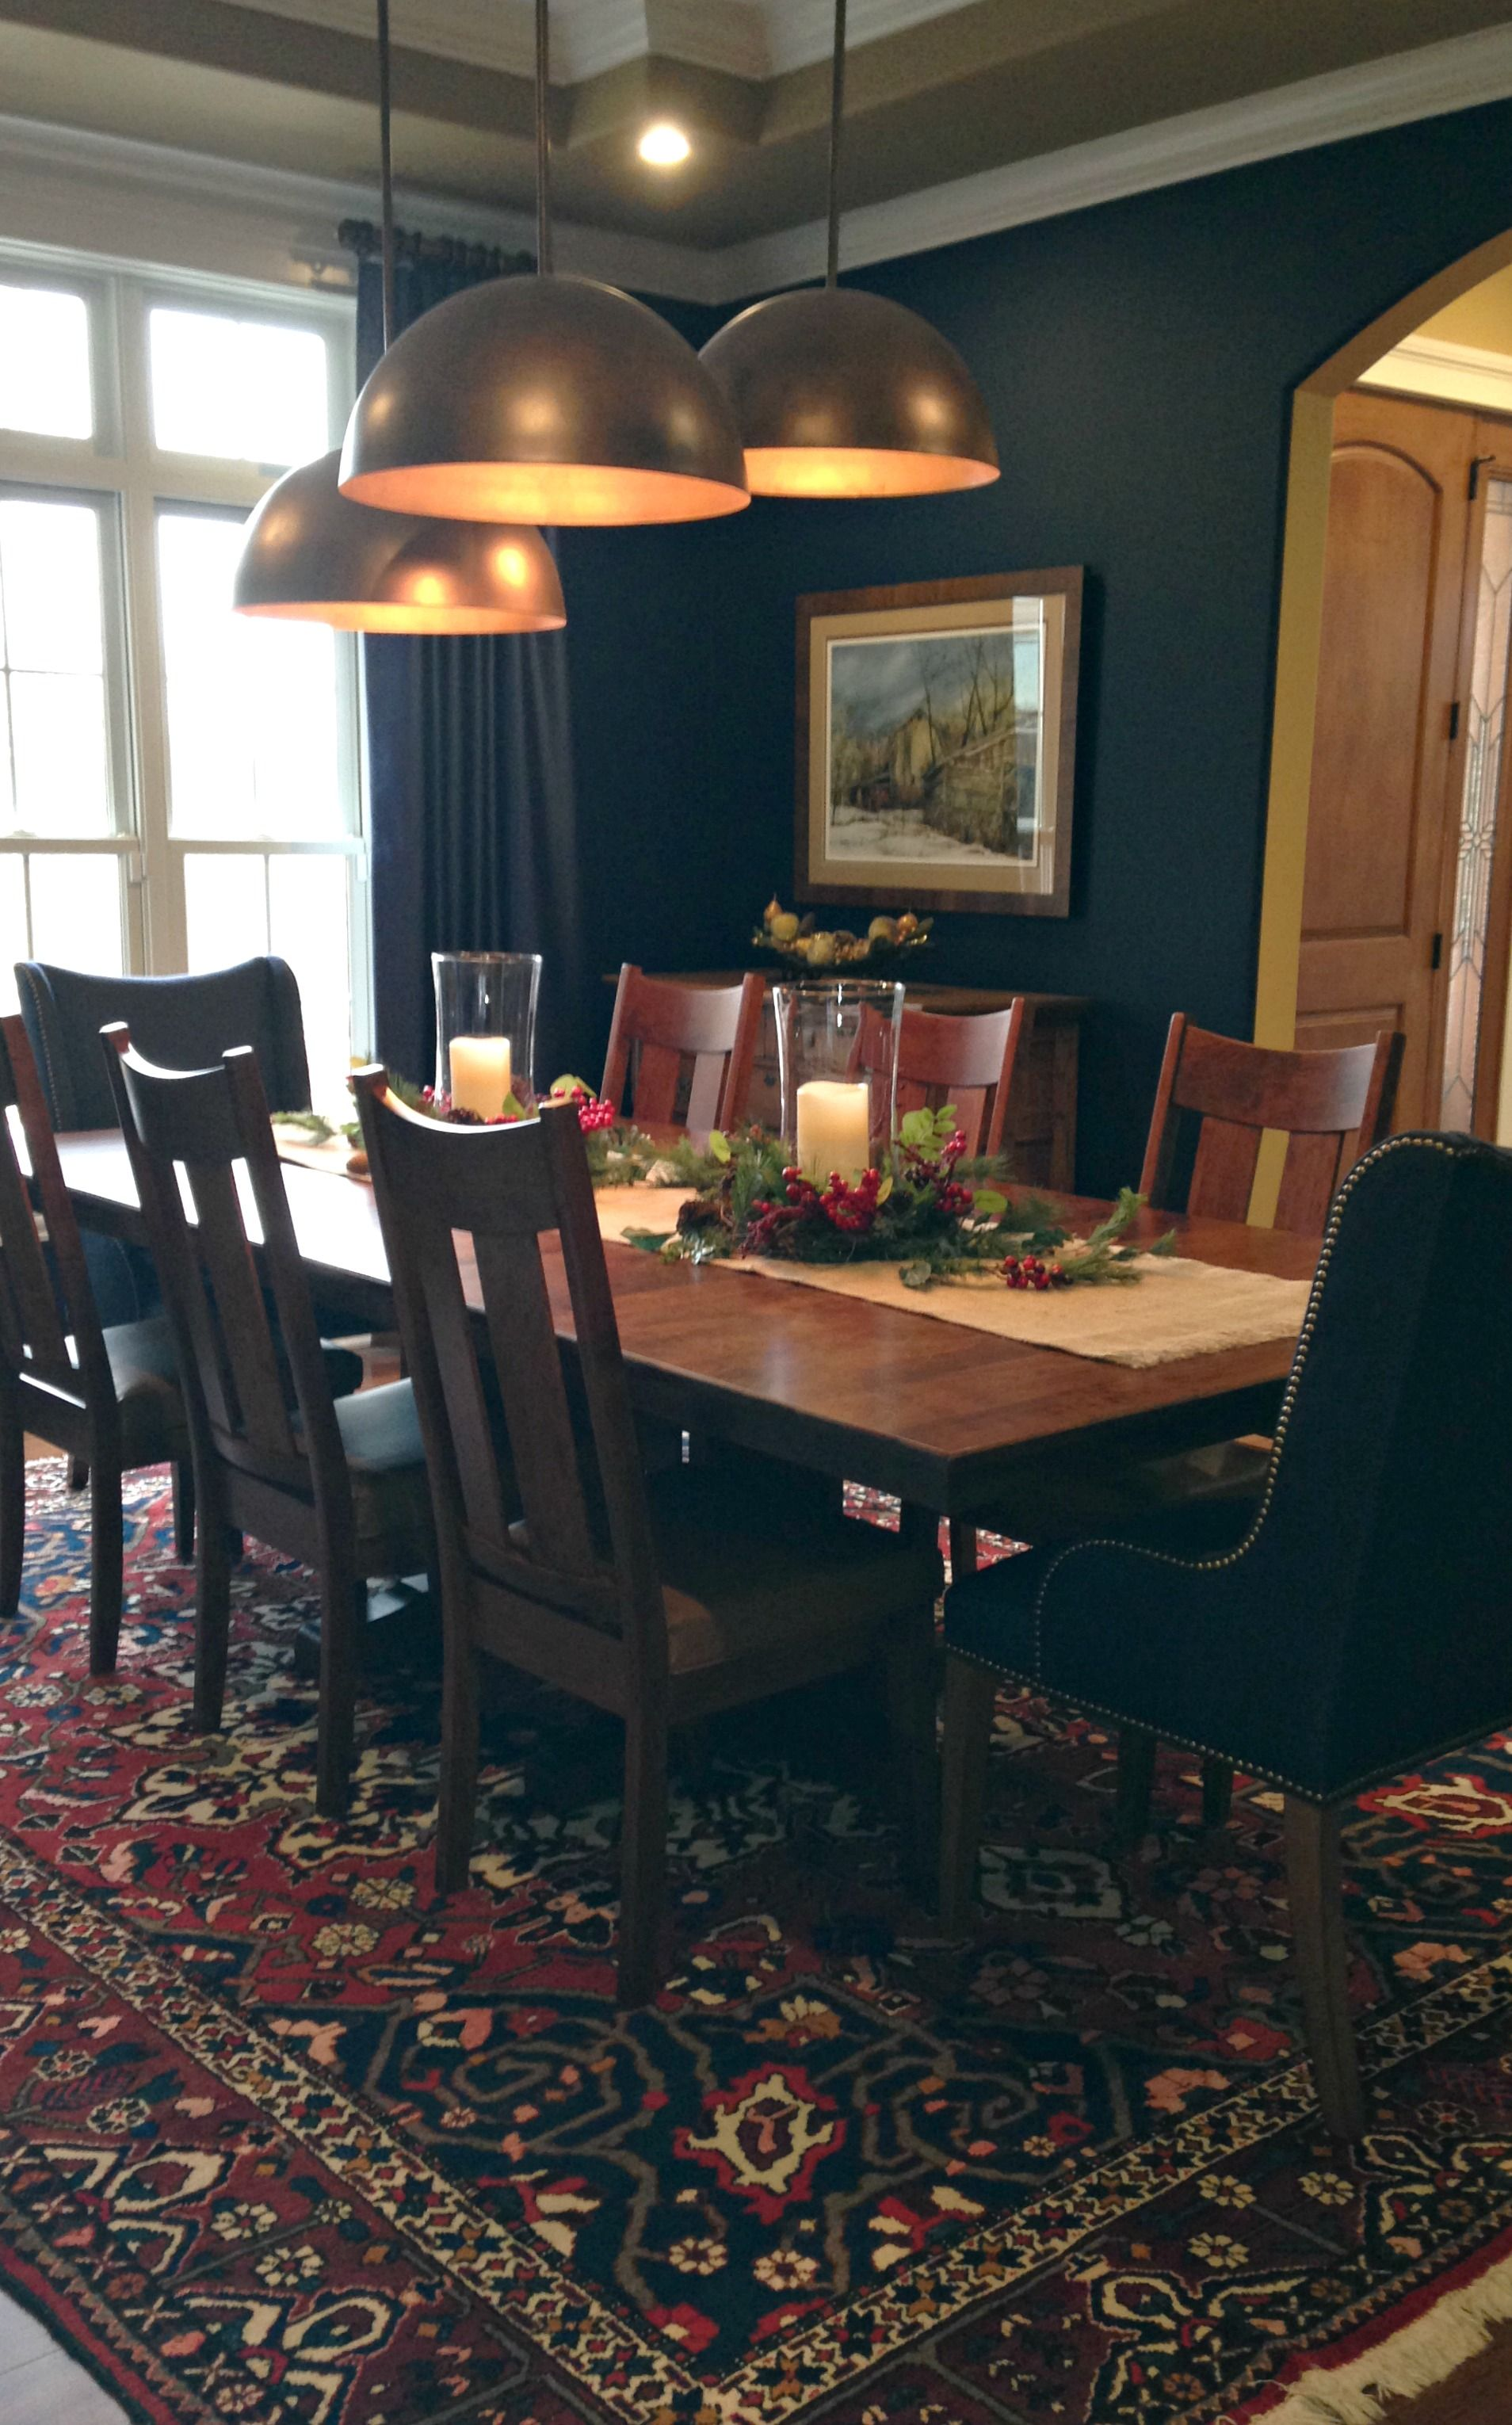 Navy And Red Oriental Rug Under Custom Dining Room Table And Chairs Navy Blue Walls Staggered Oriental Rug Living Room Red Dining Room Rugs In Living Room #red #persian #rug #living #room